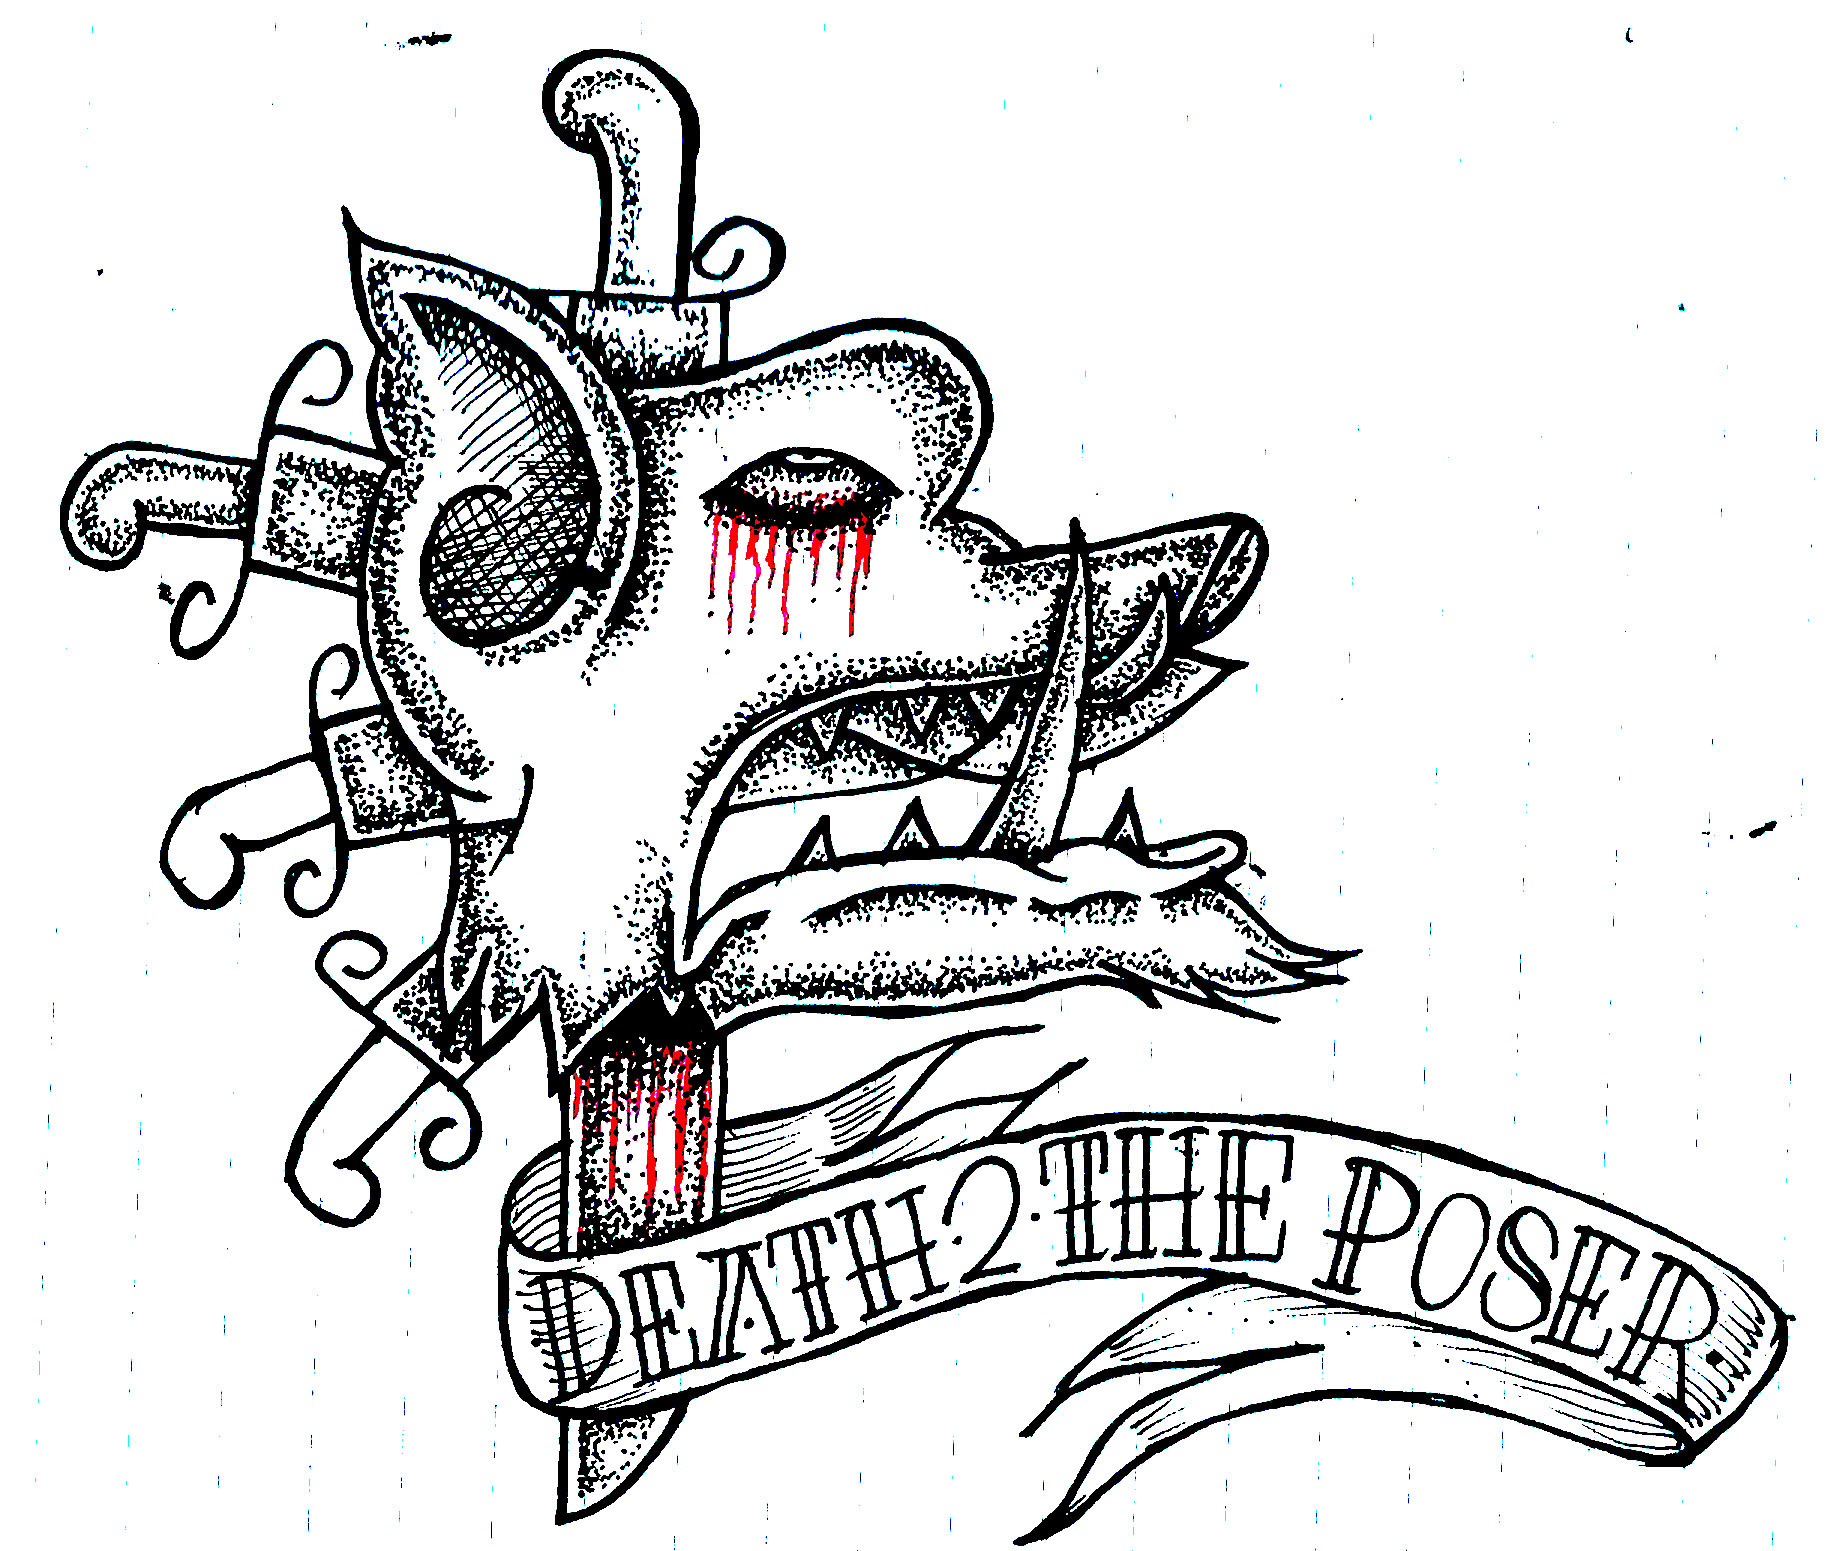 death to the poser